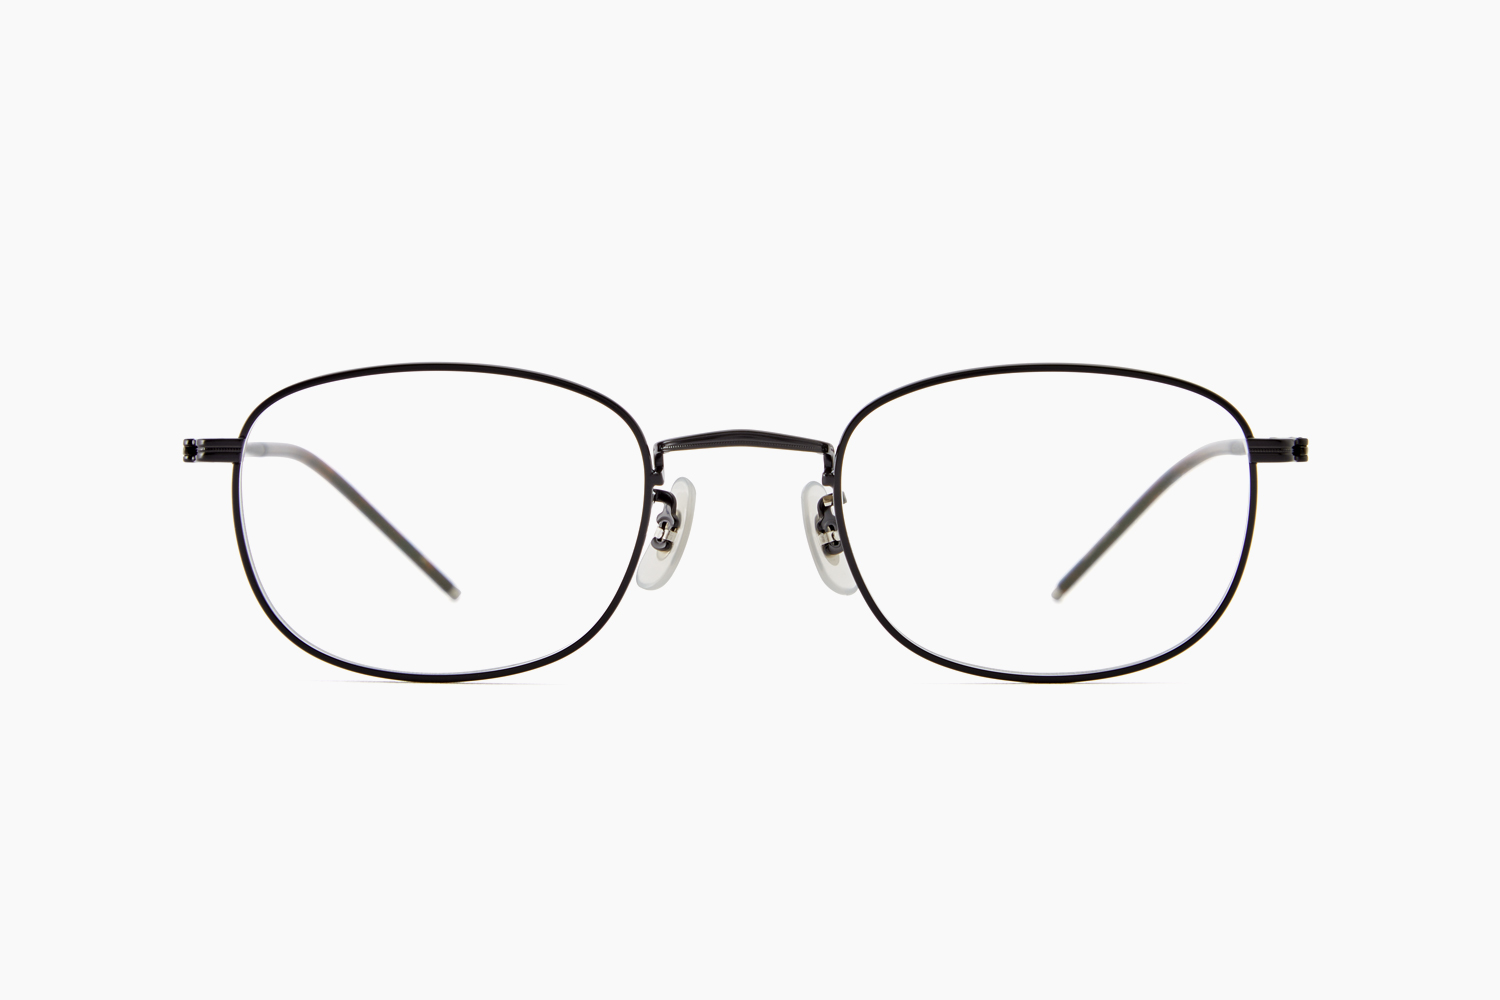 A/t-SQR - BK|ARCH OPTICAL